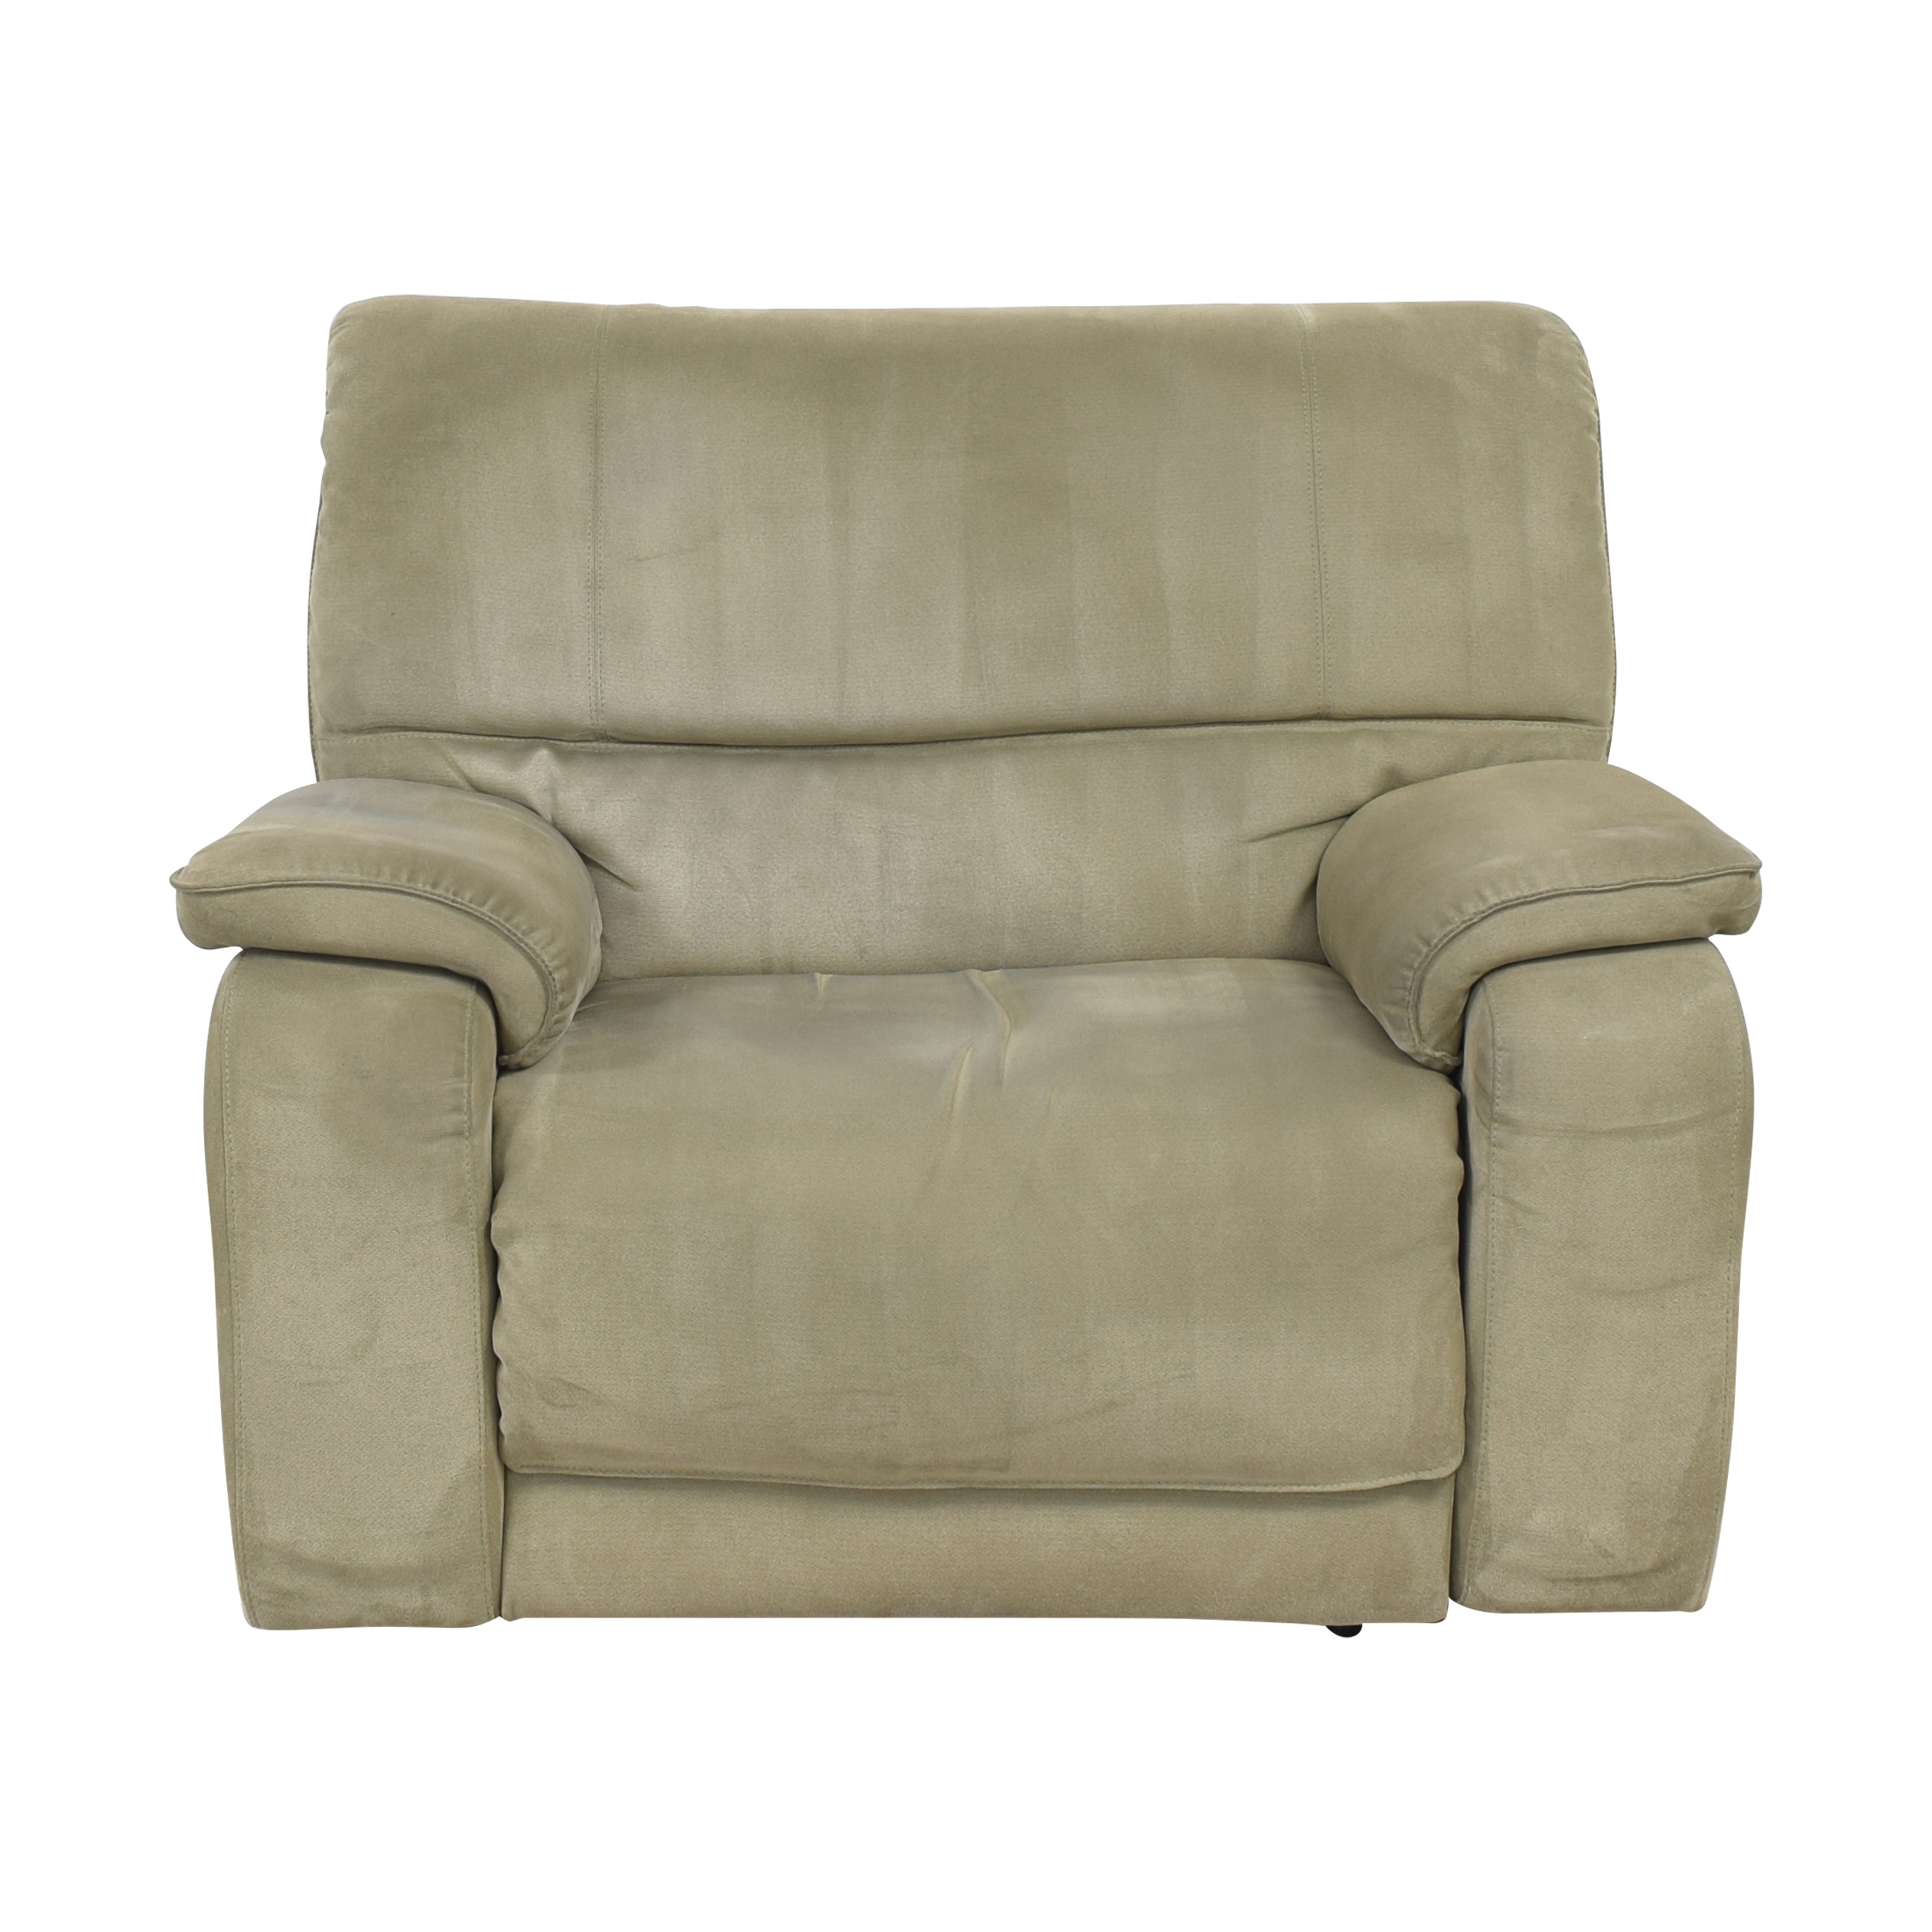 Macy's Macy's Oversized Recliner on sale